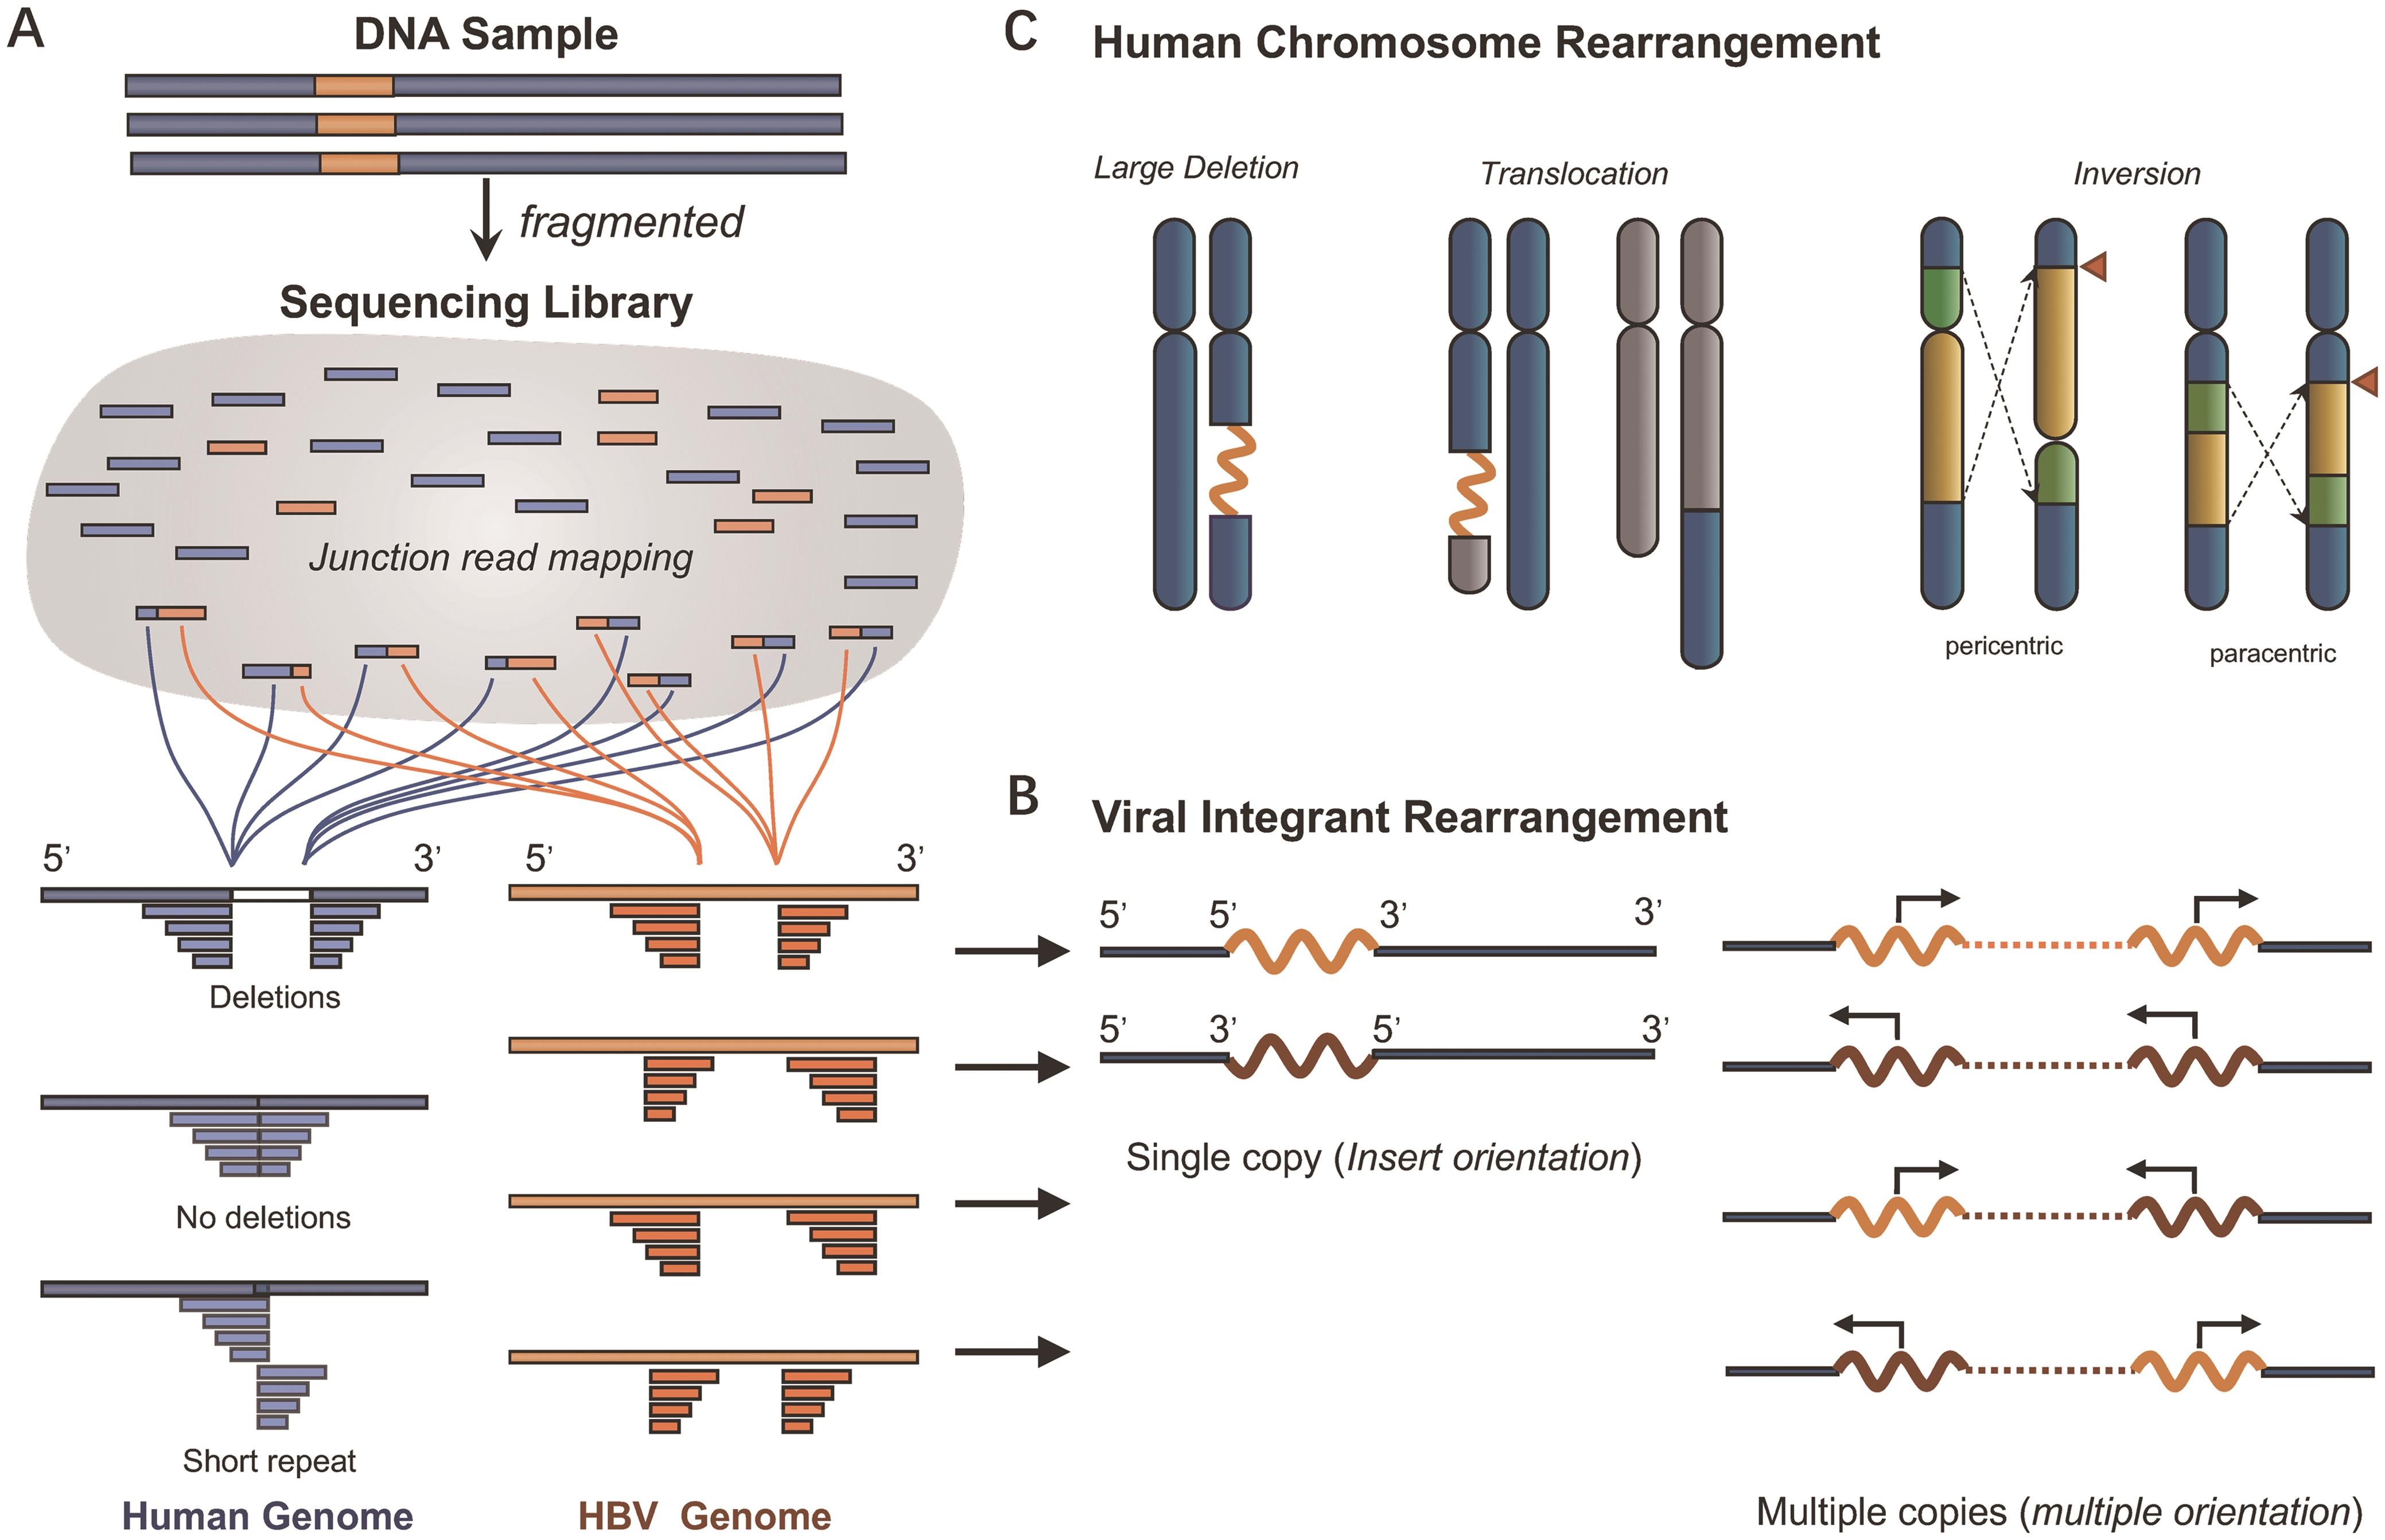 Integration identification based on short-read sequencing and cofounding factors.